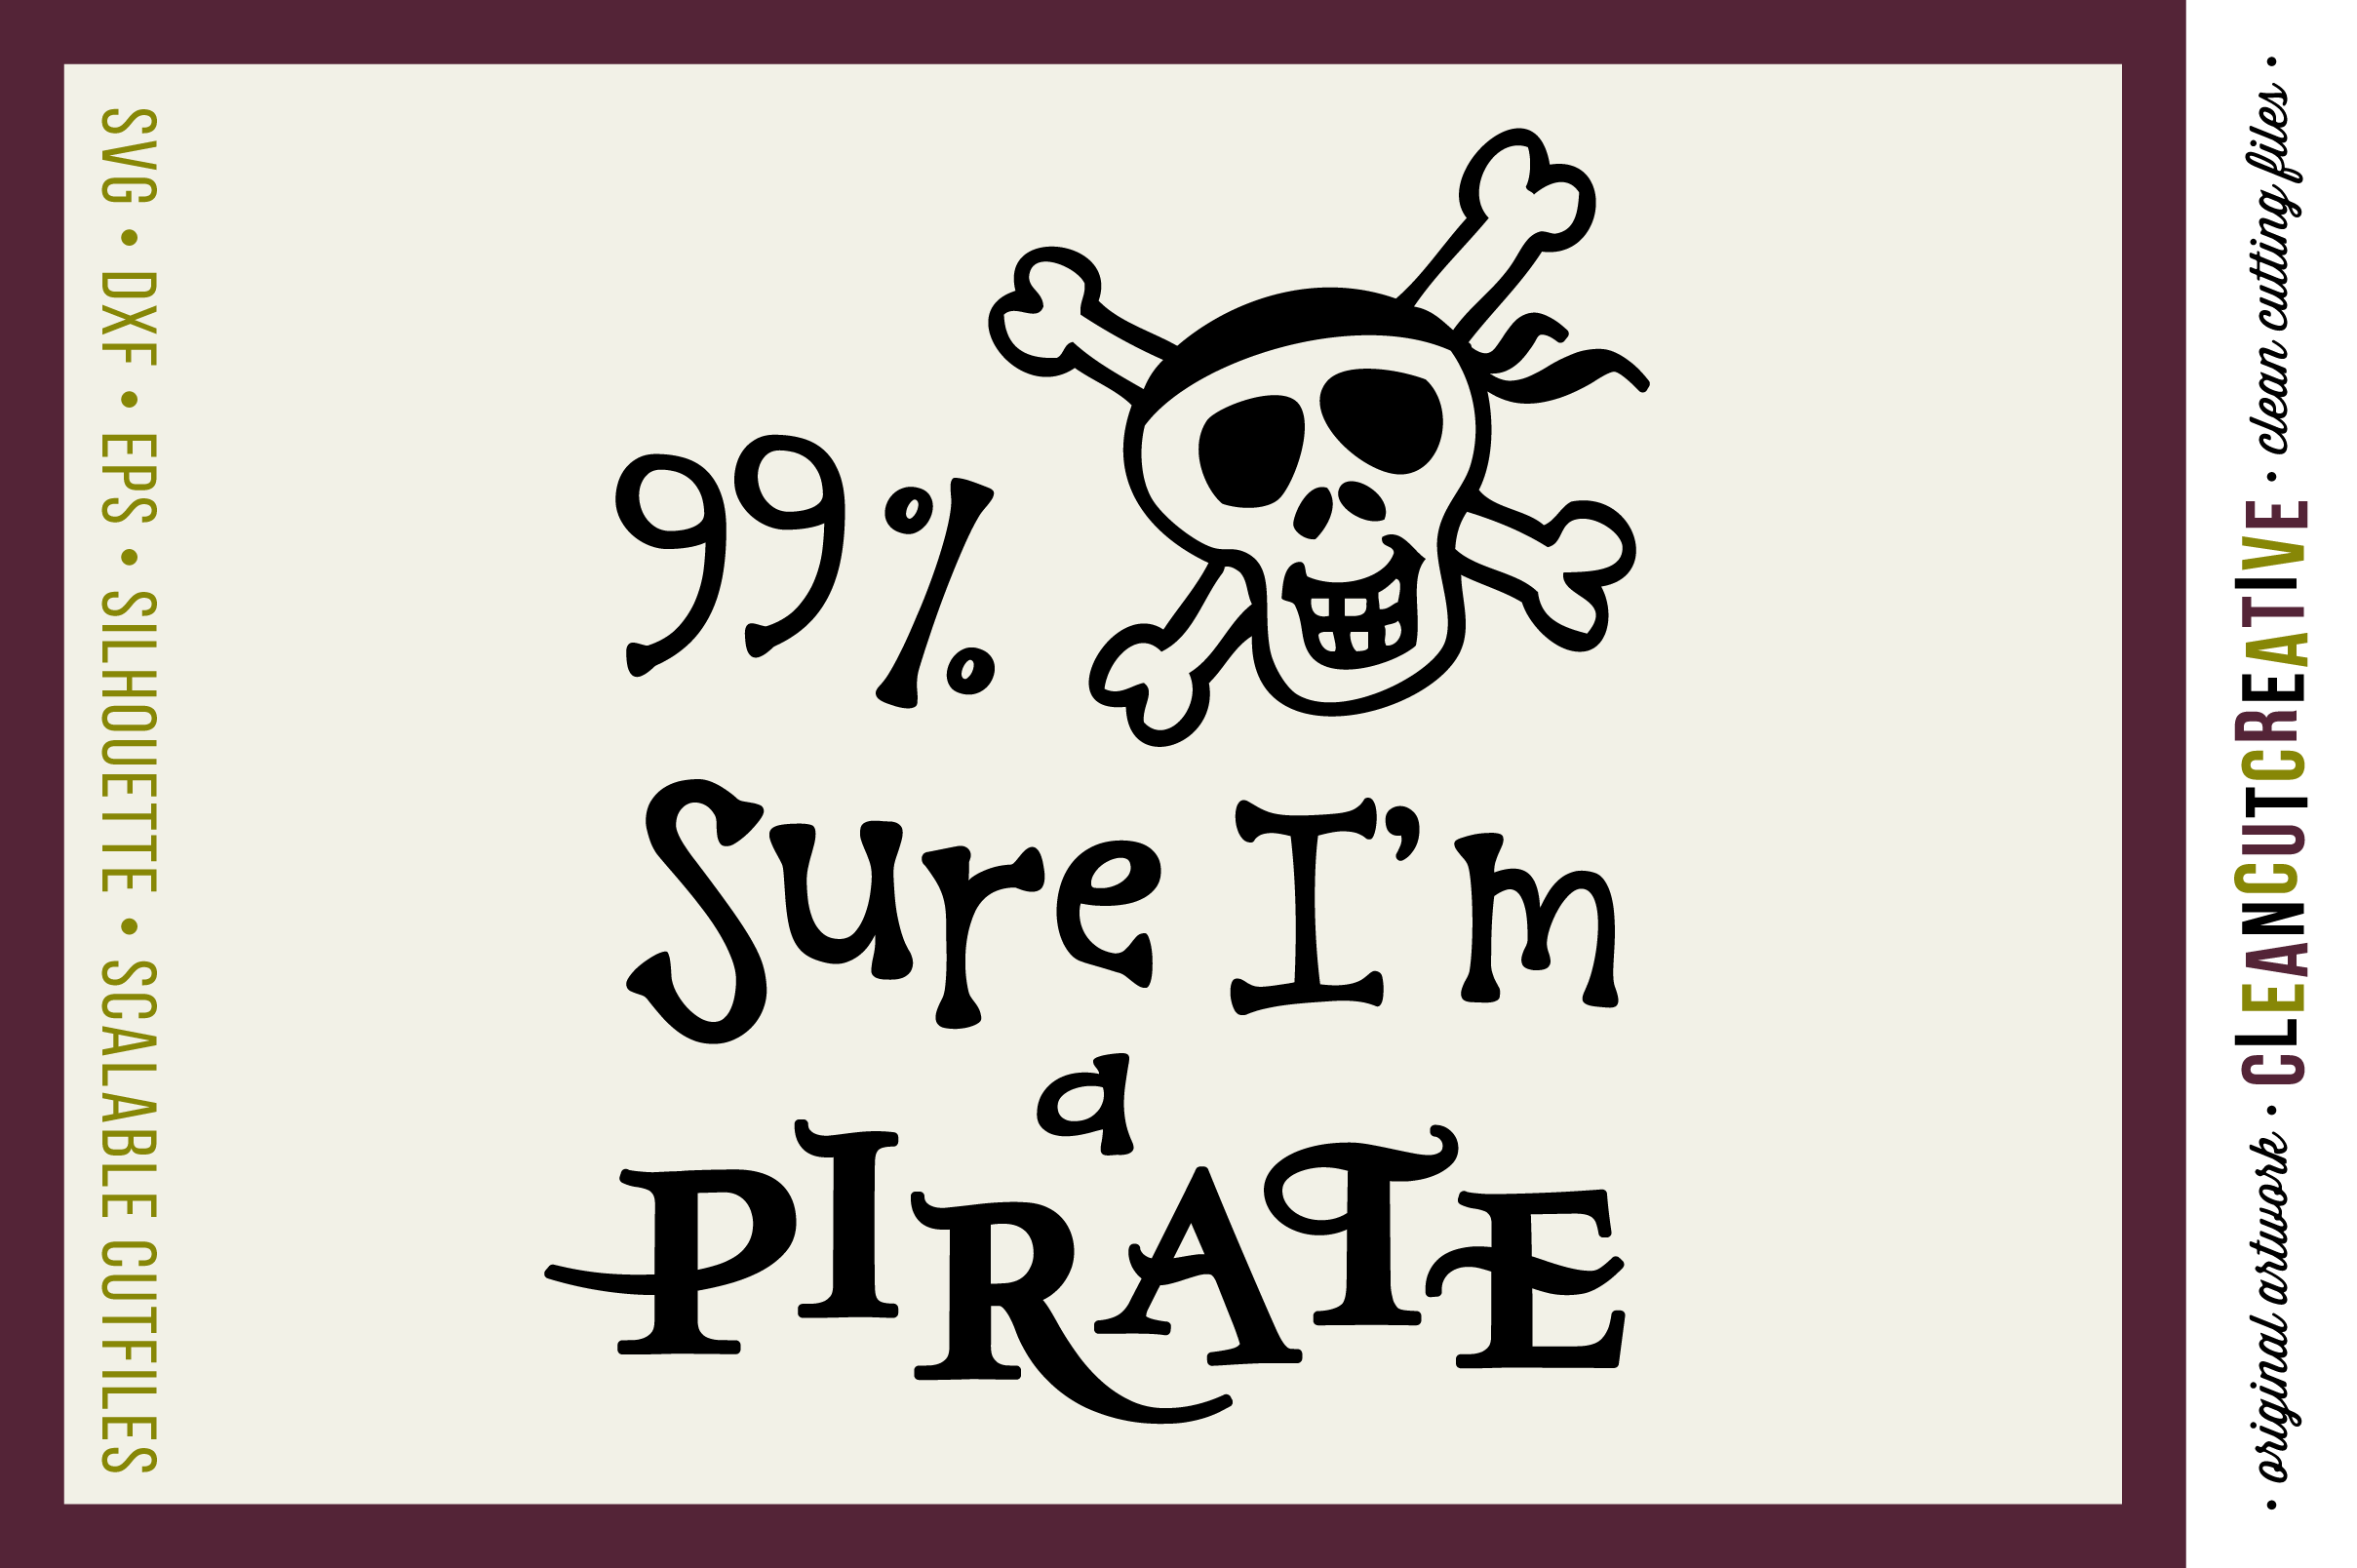 Funny Boys Quote 99% Sure I'm a Pirate - SVG DXF EPS PNG- Cricut and Silhouette - clean cutting files example image 1